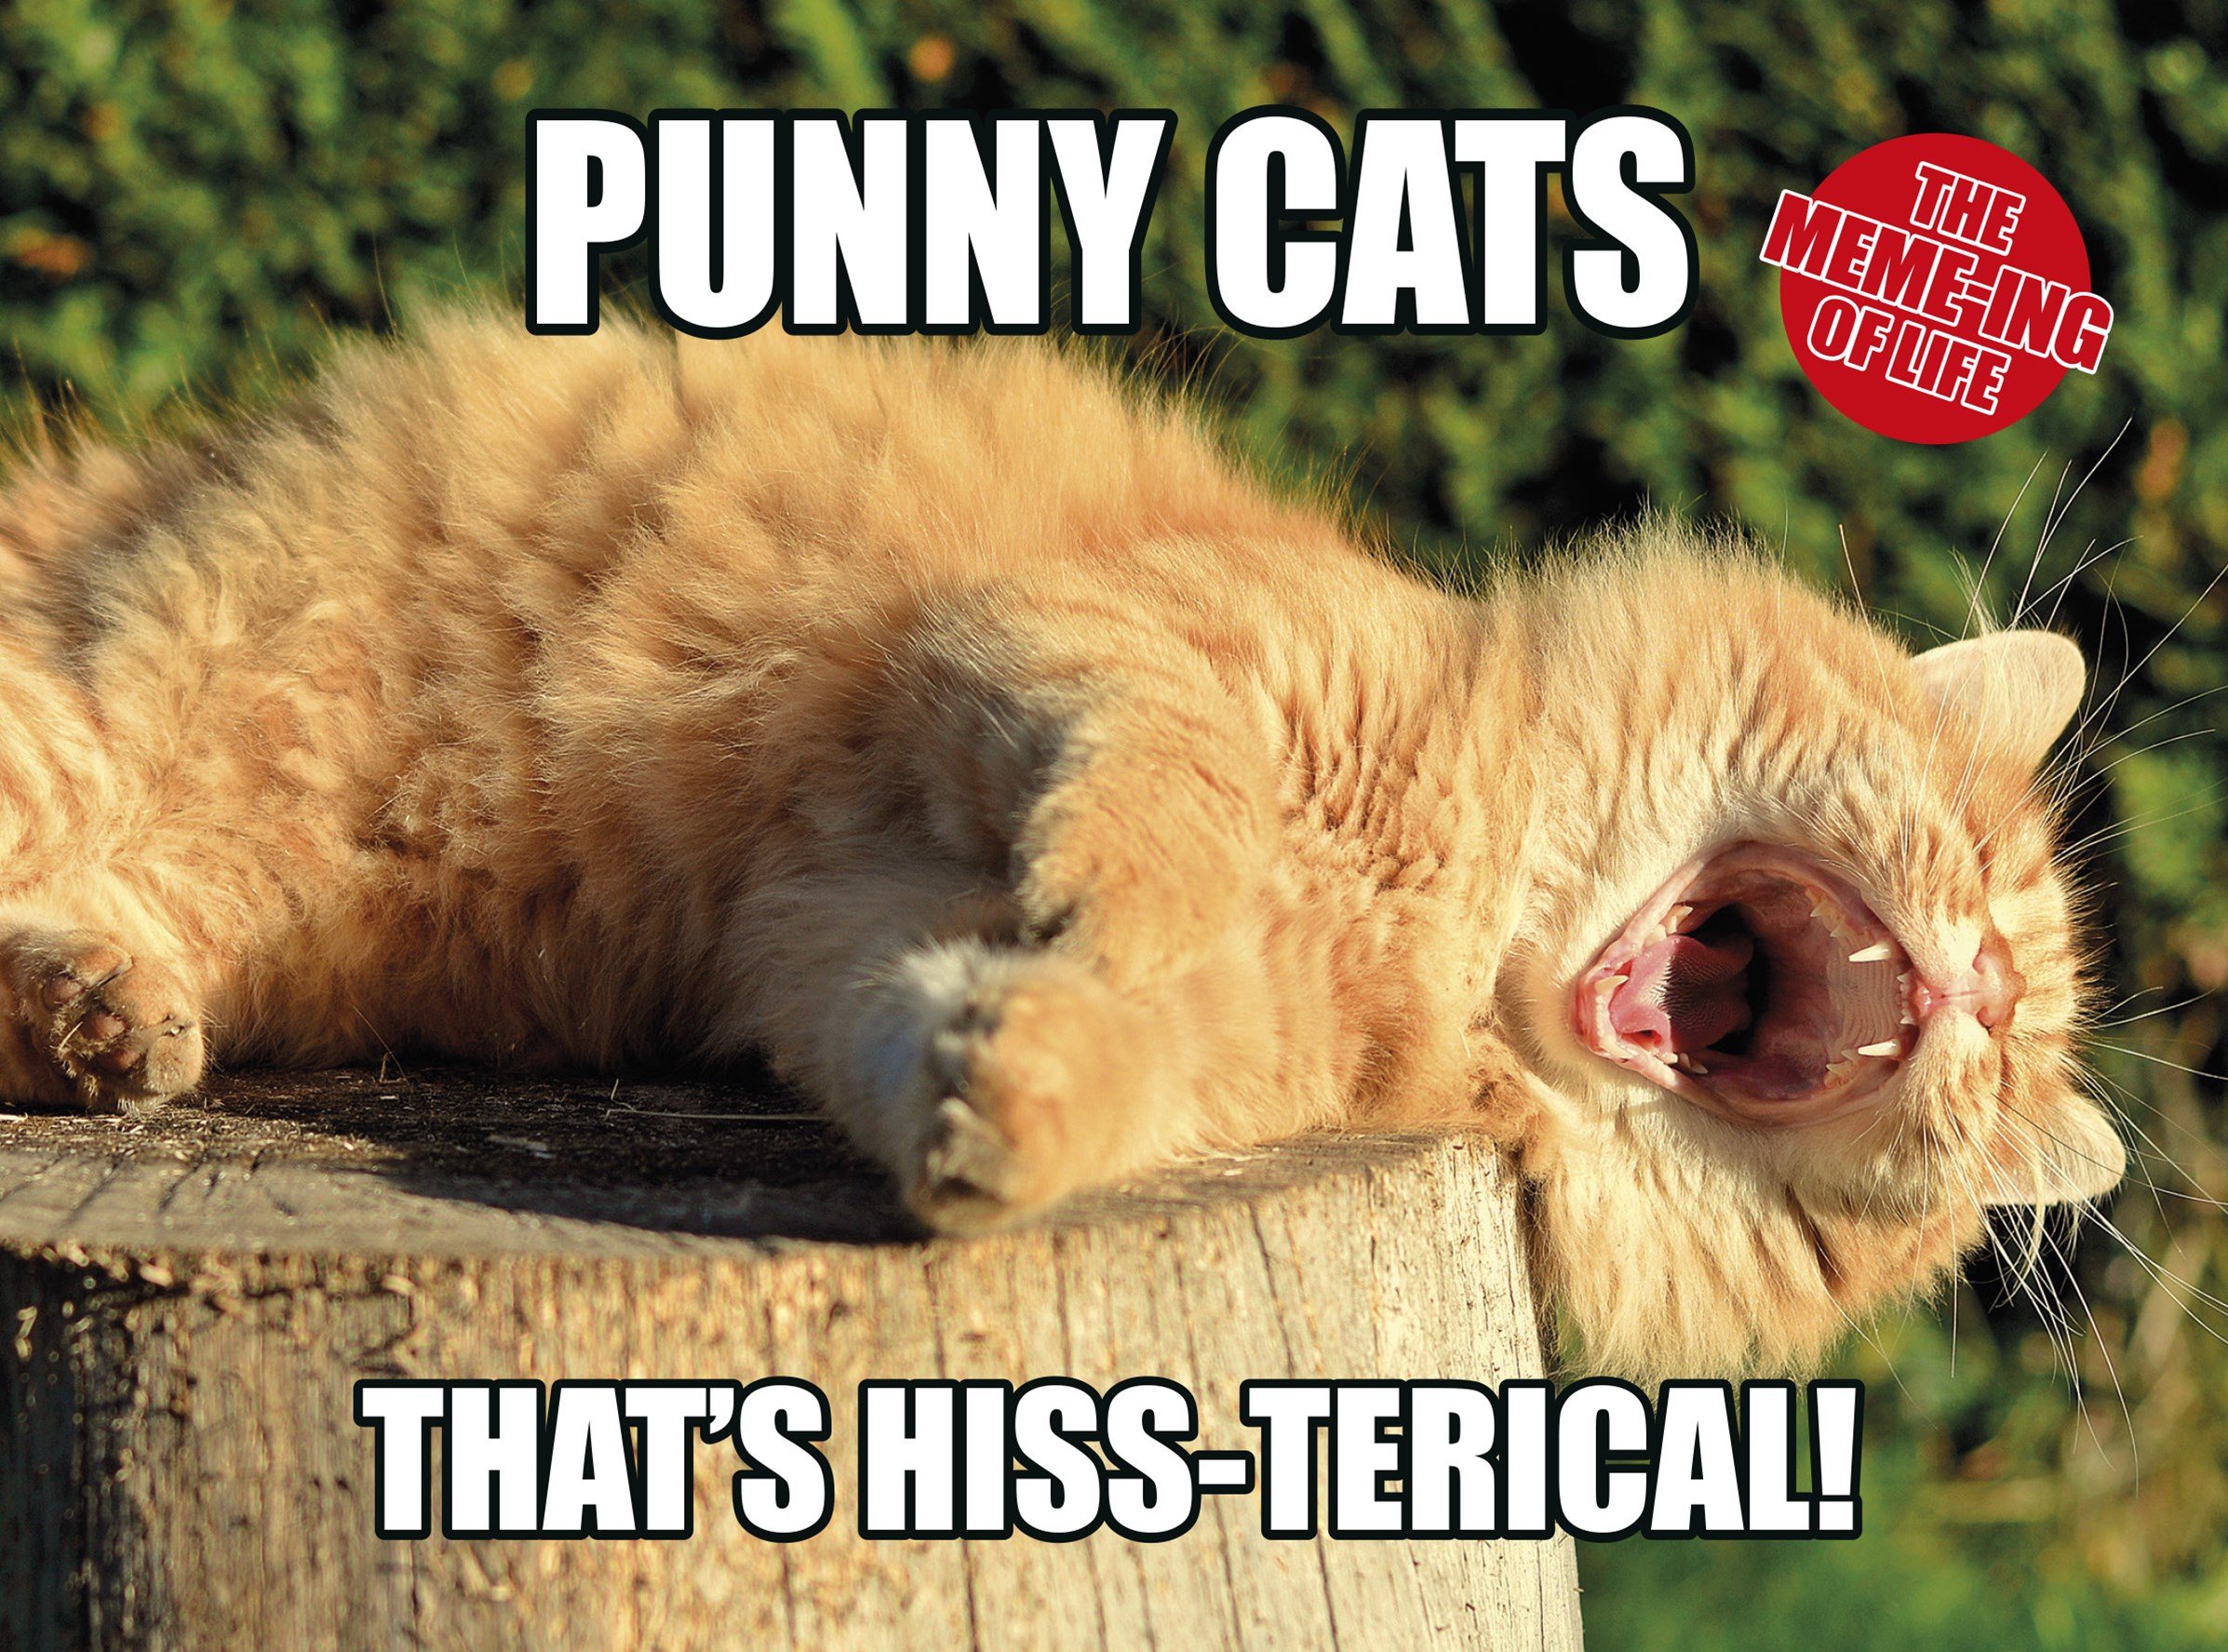 Meme-Ing of Life: Punny Cats: That's Hiss-Terical